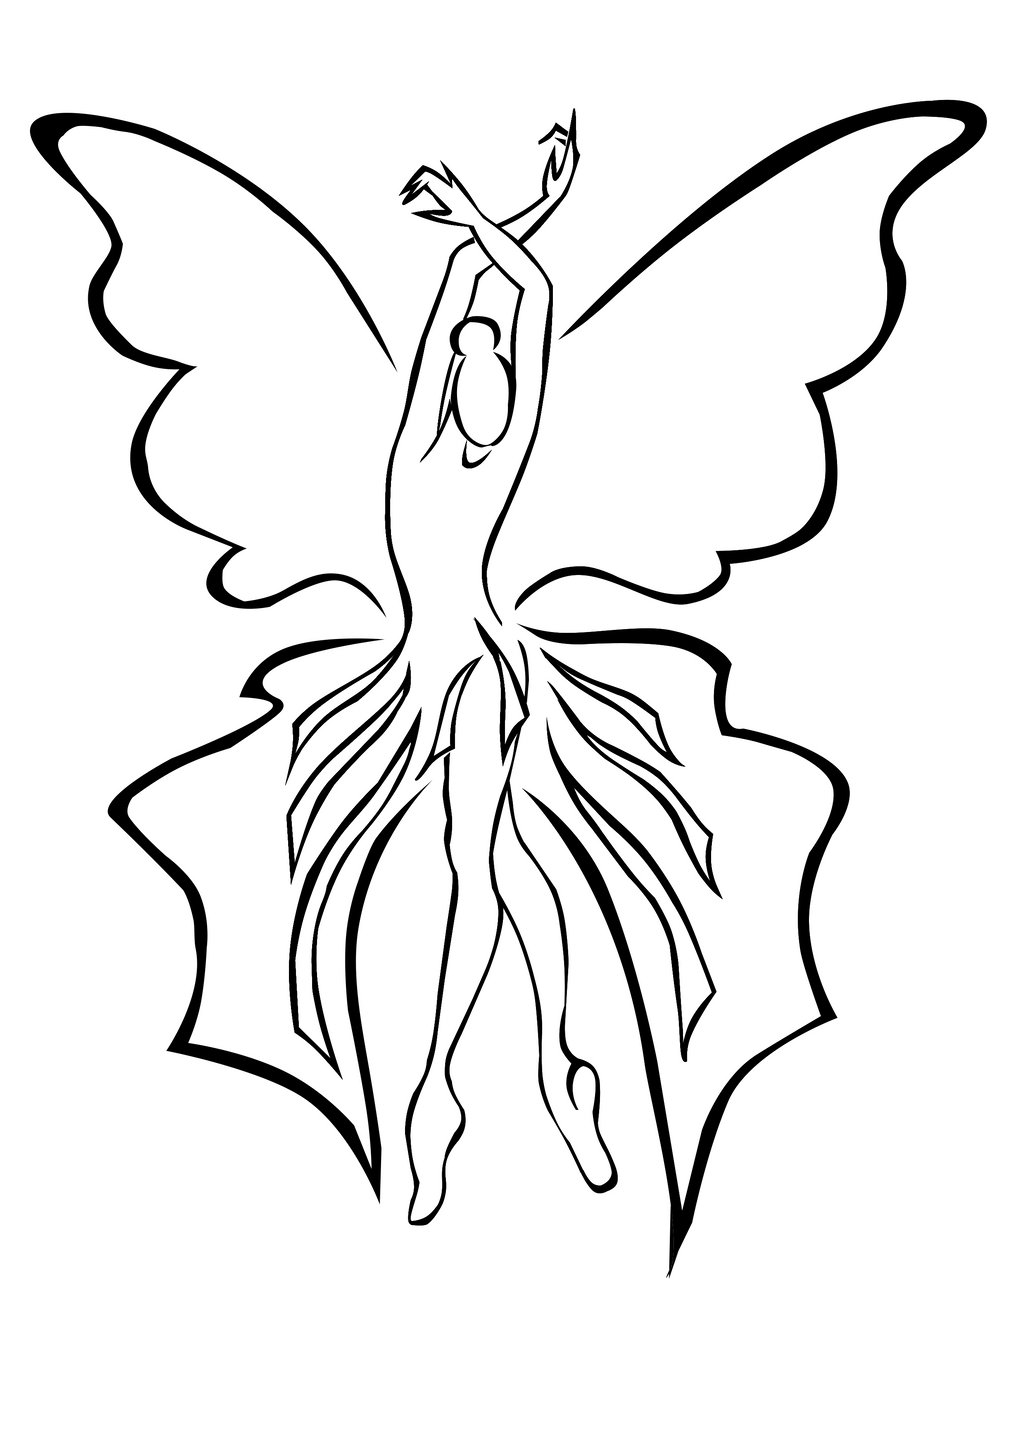 Line Drawing Of Woman : Woman butterfly by elro on deviantart